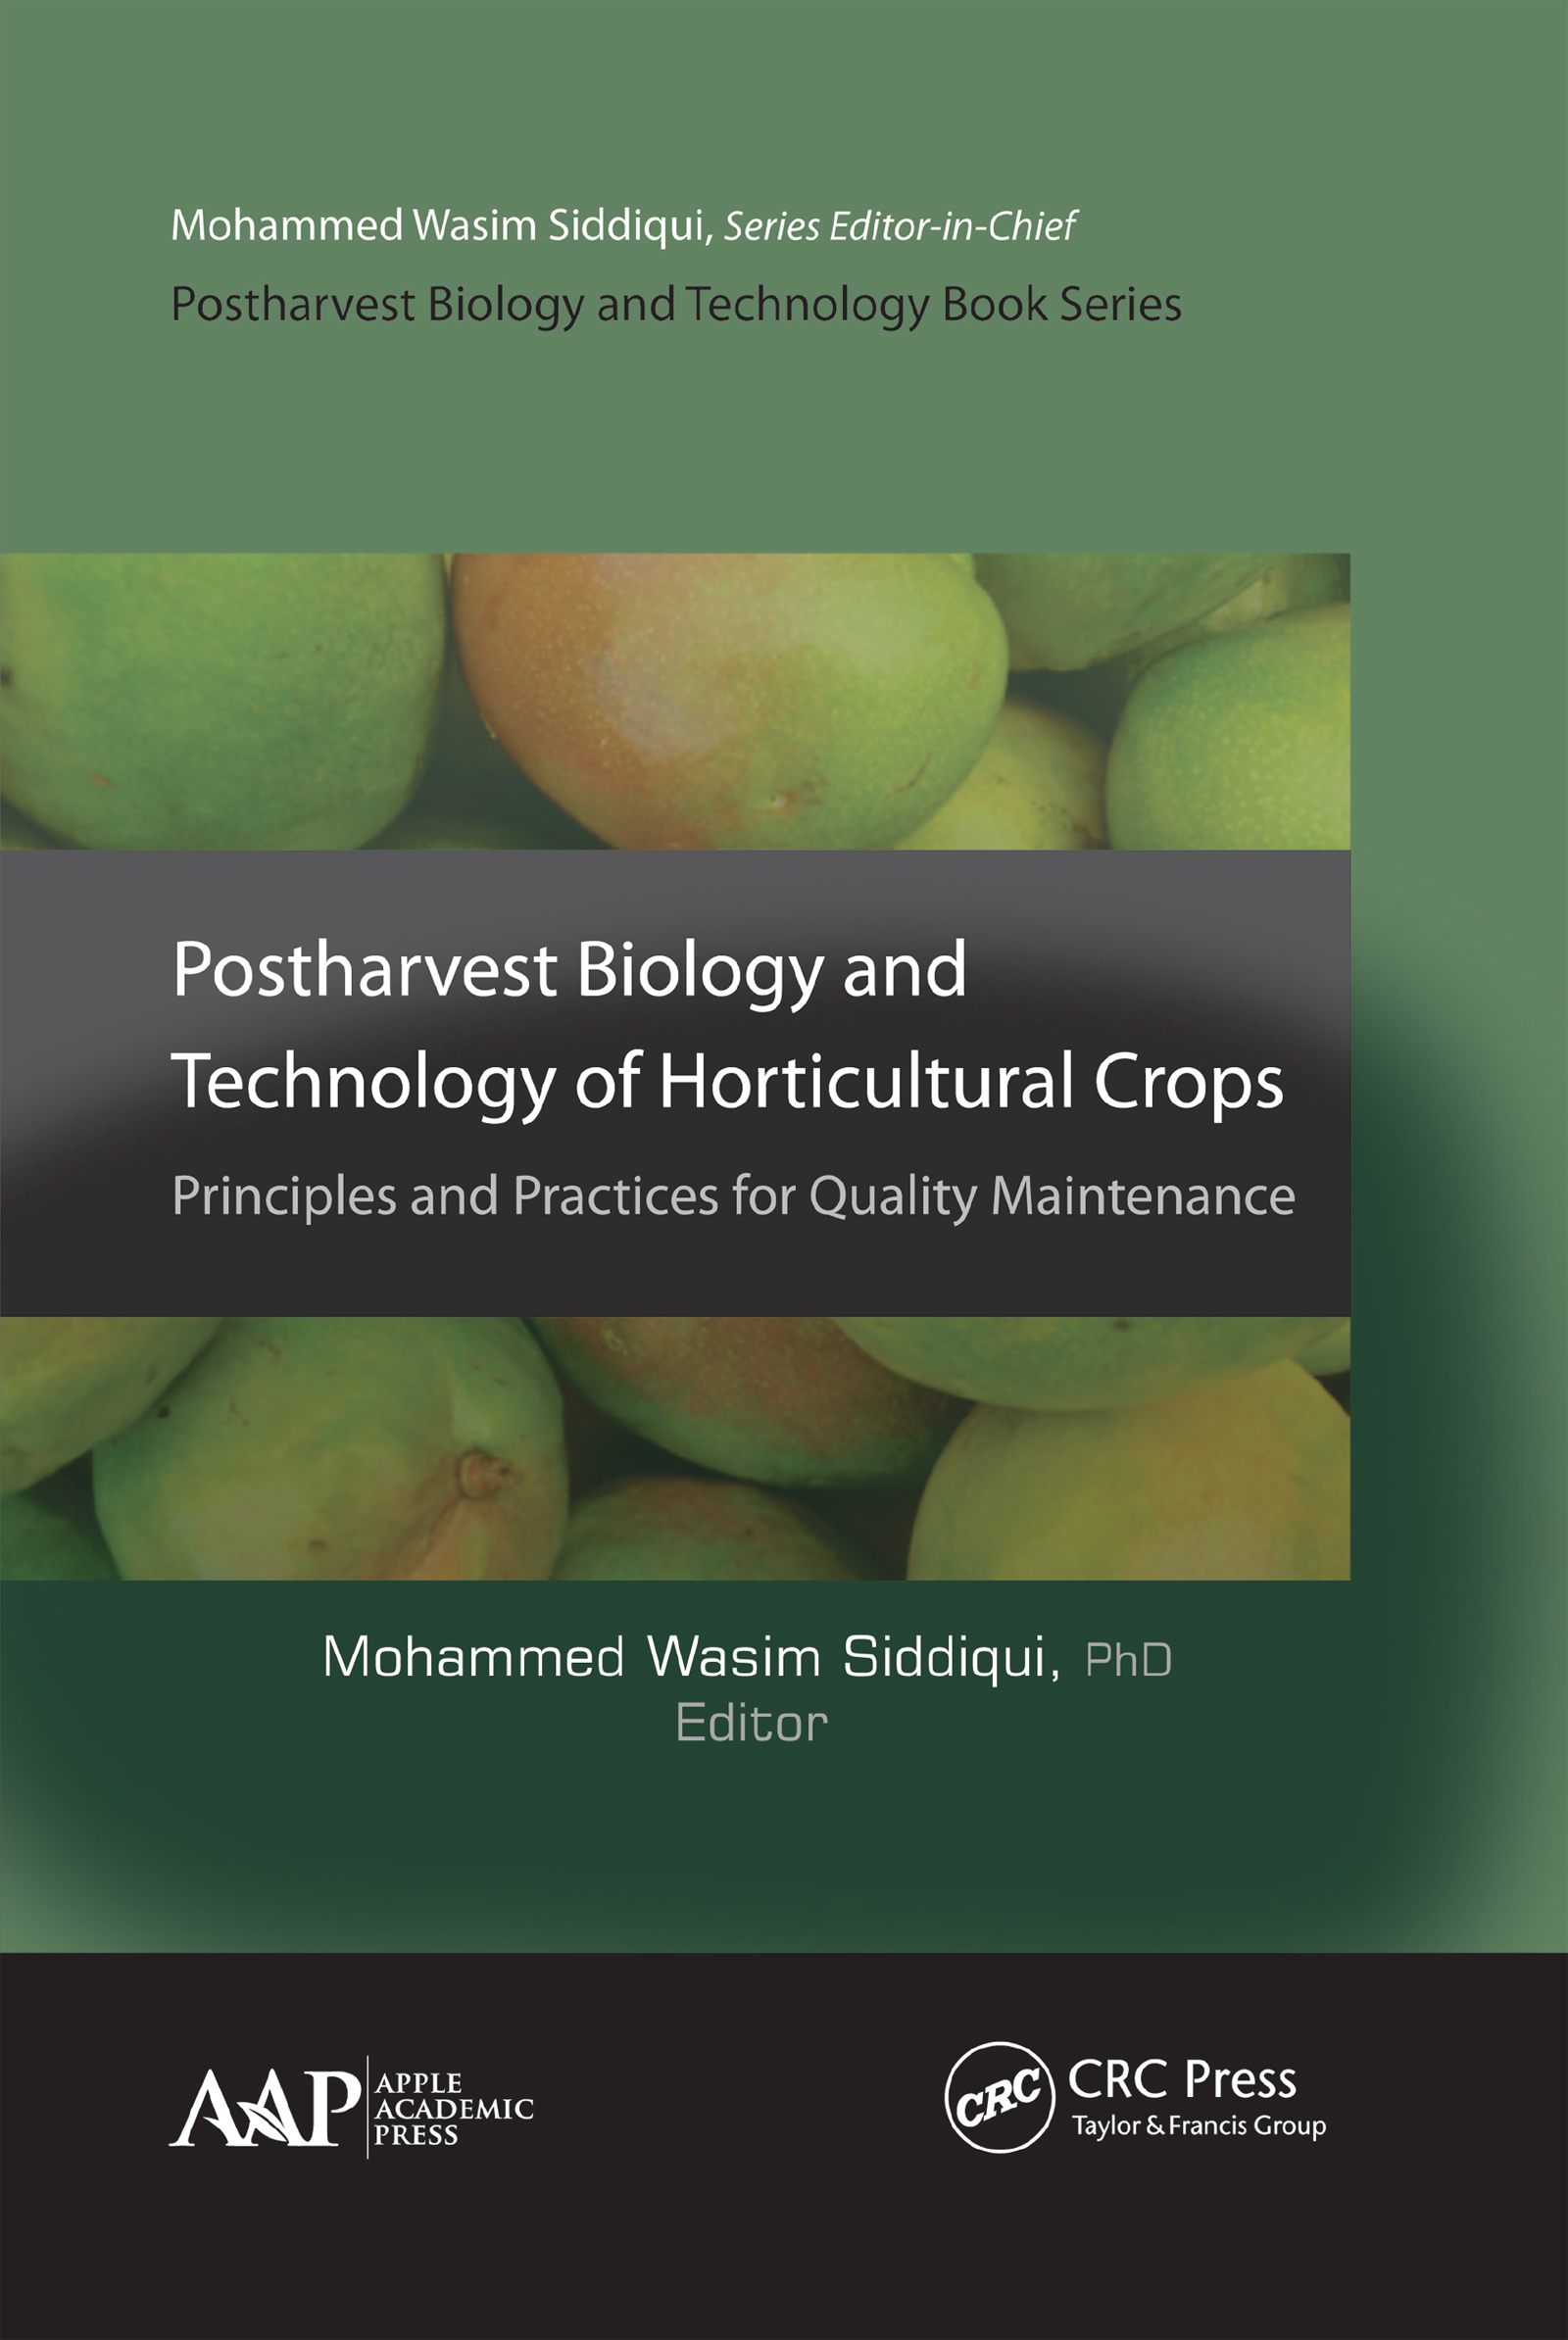 Advances in Conventional Breeding Approaches for Postharvest Quality Improvement of Fruits